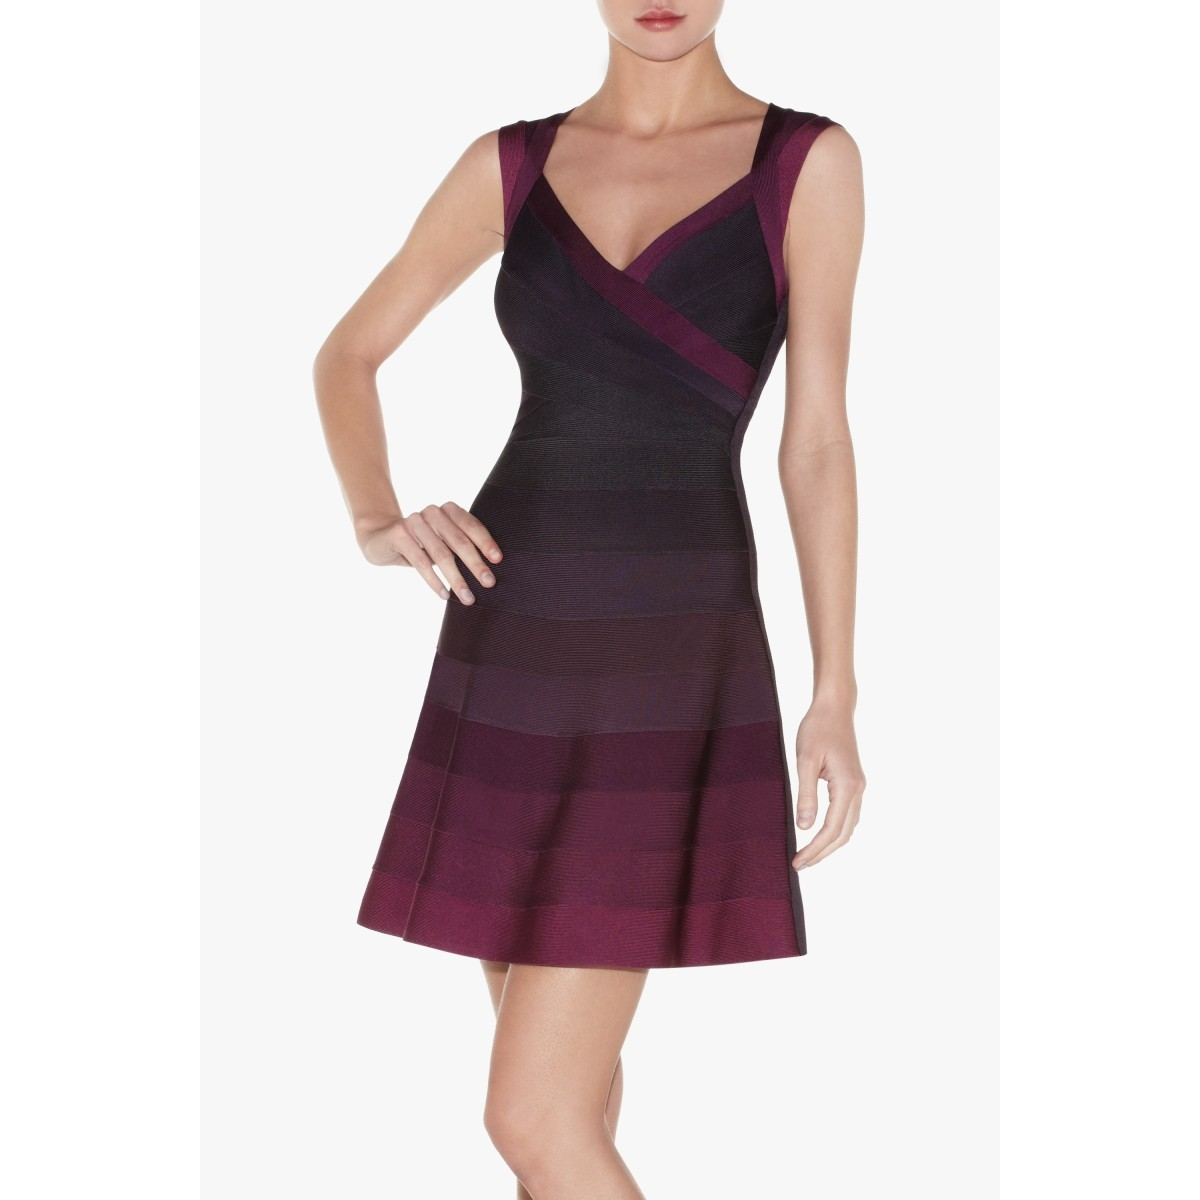 Herve Leger Edita Bandage Dress